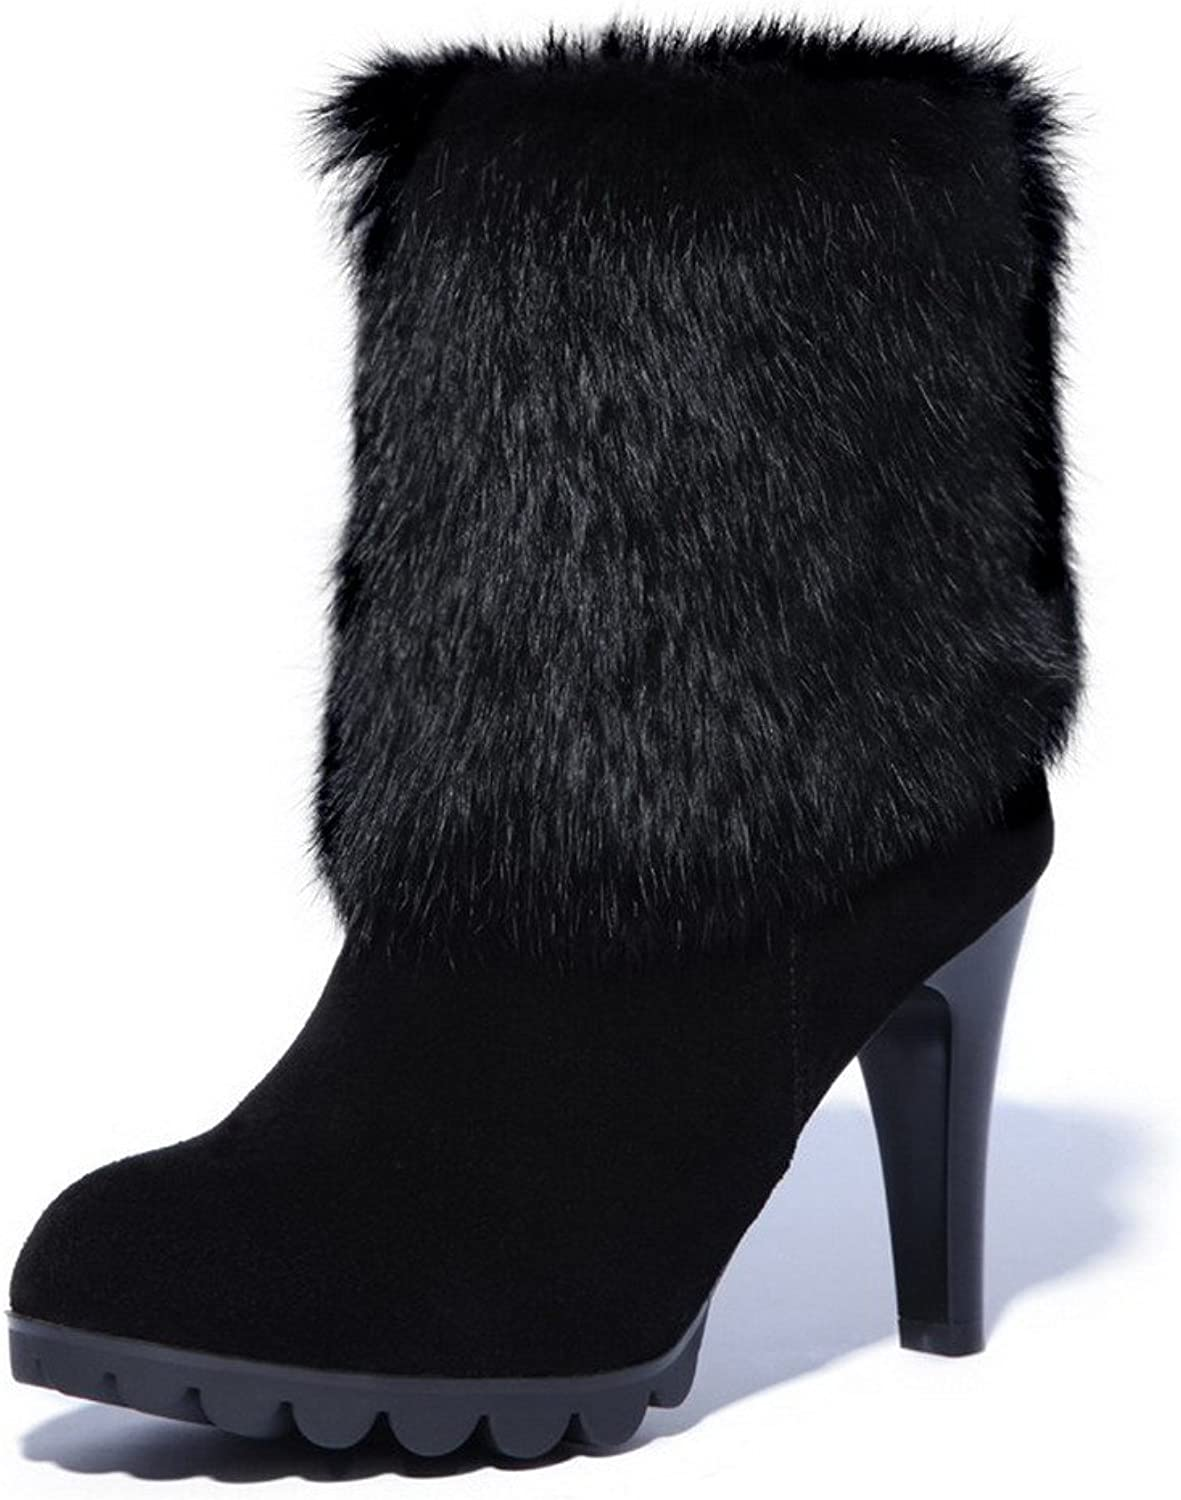 WeenFashion Women's Cow Skull Patch High-Heels Closed-Toe Boots with Rabbit Hair